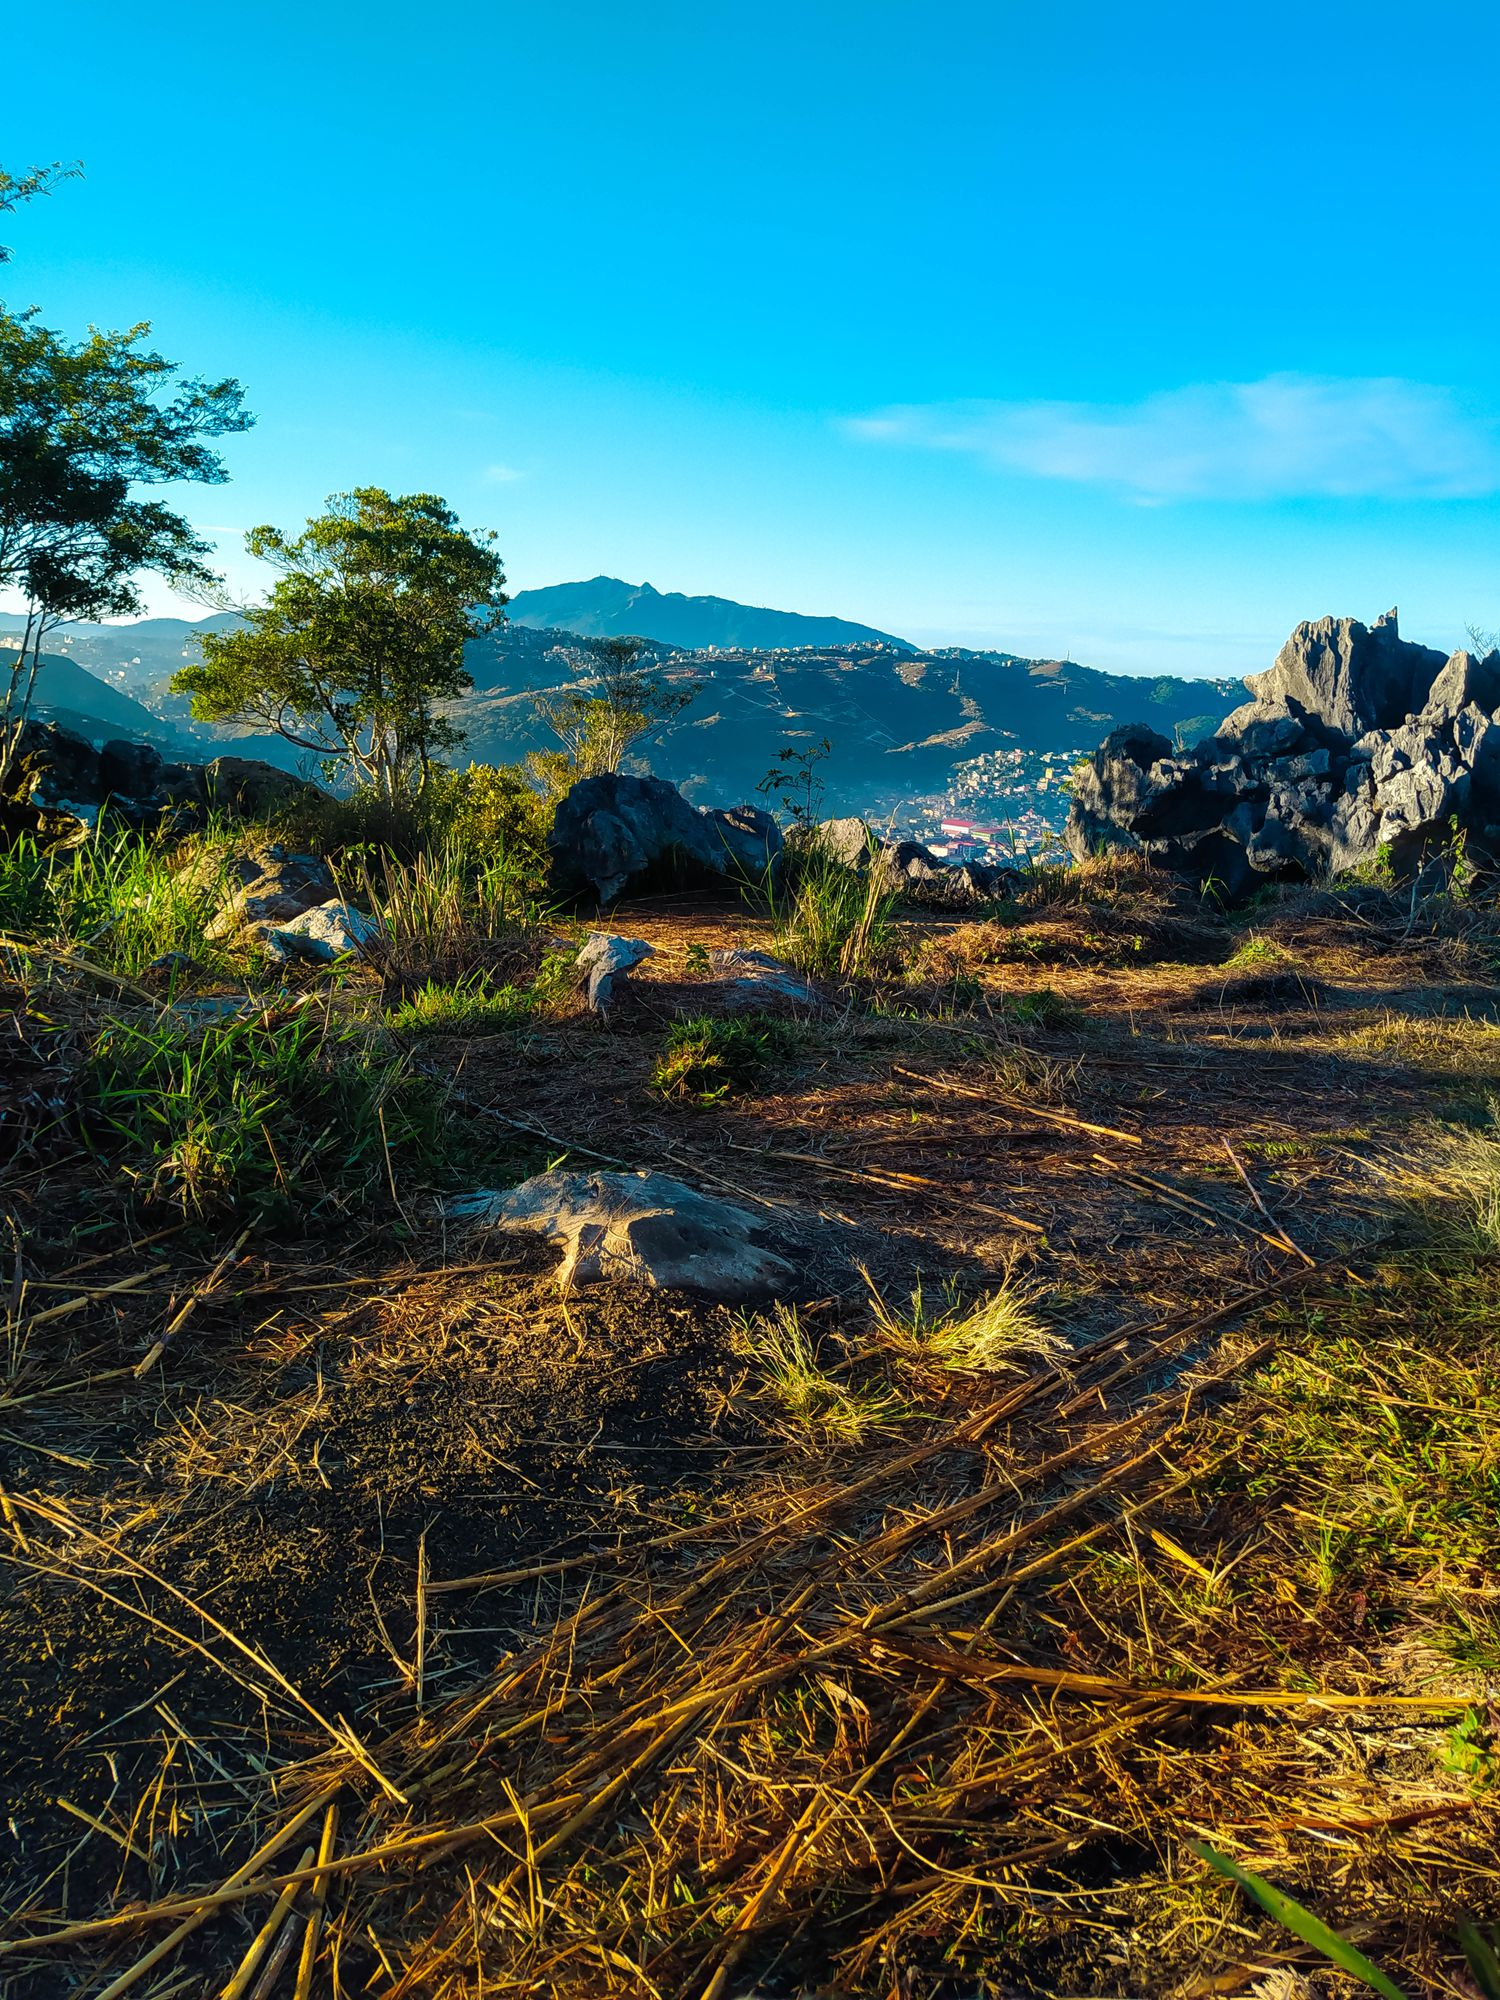 Grass-clad terrain riddled with limestone rocks and a few trees overlooking a valley town surrounded by mountains in the distance at Mount Kalugong